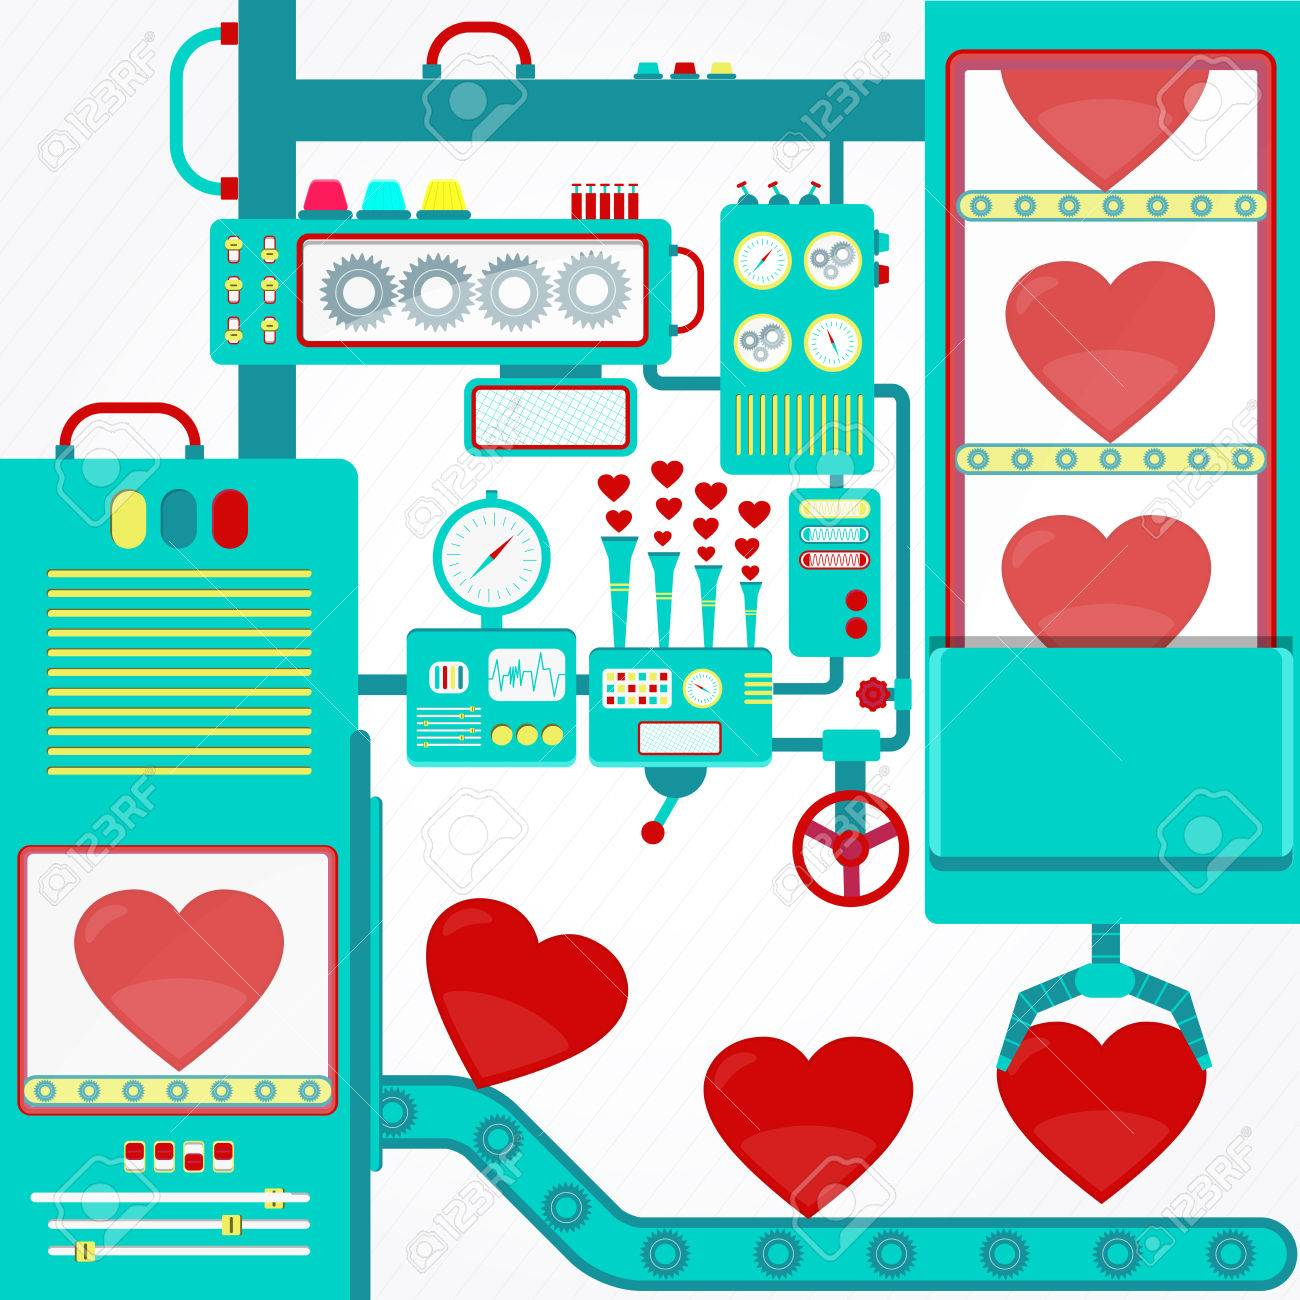 Factory of love. Industry of love with machinery and gripper holding red hearts. Fantasy. - 48006173